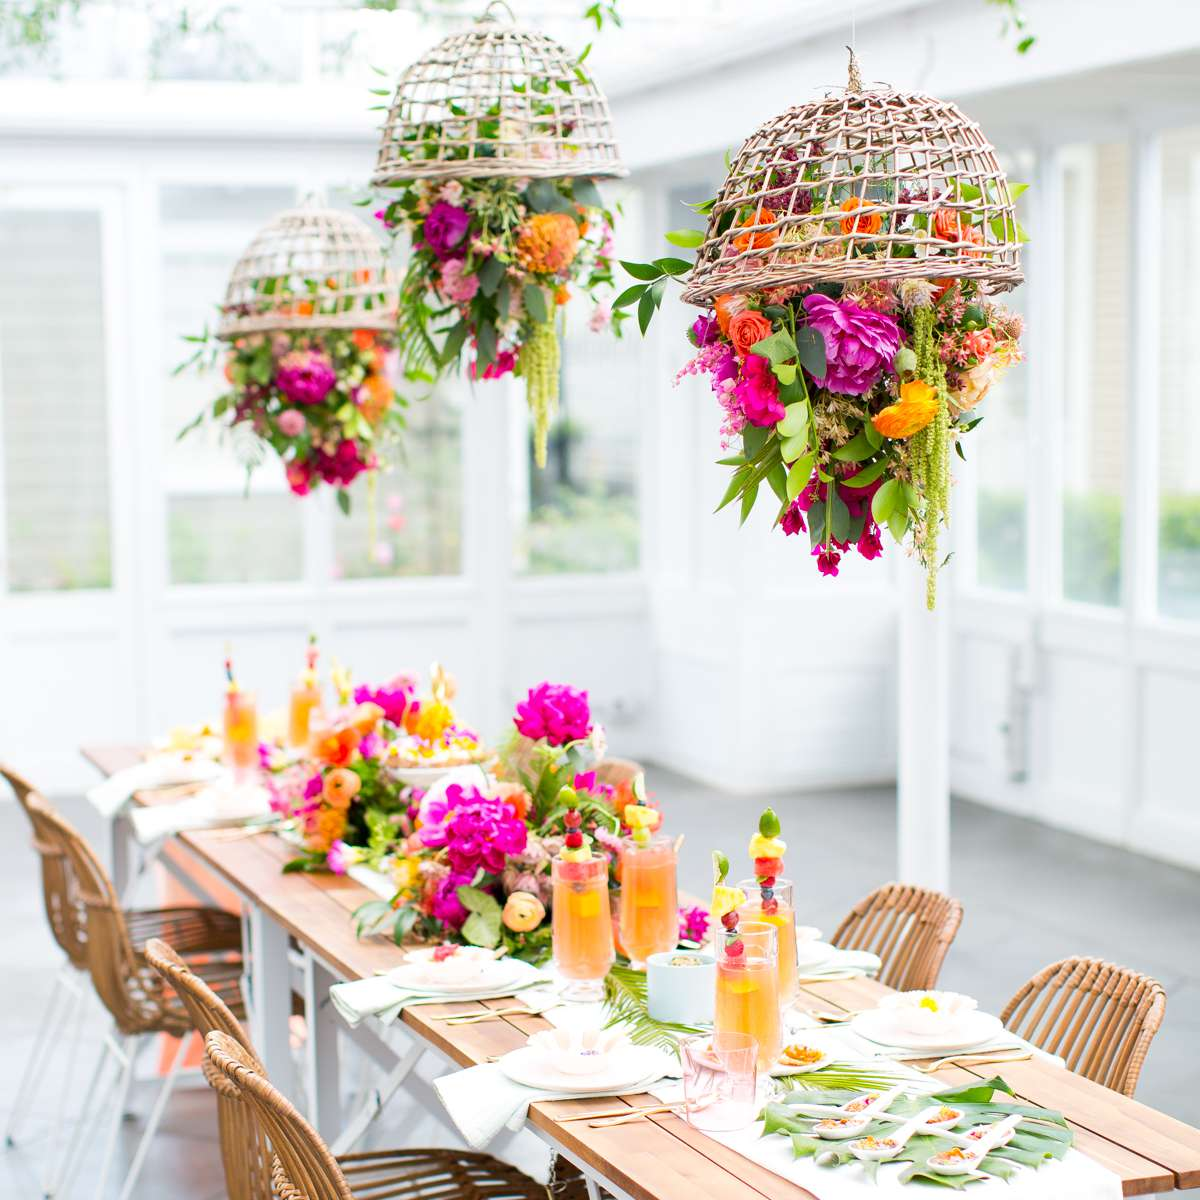 Hanging bright colored floral chandeliers above a set table